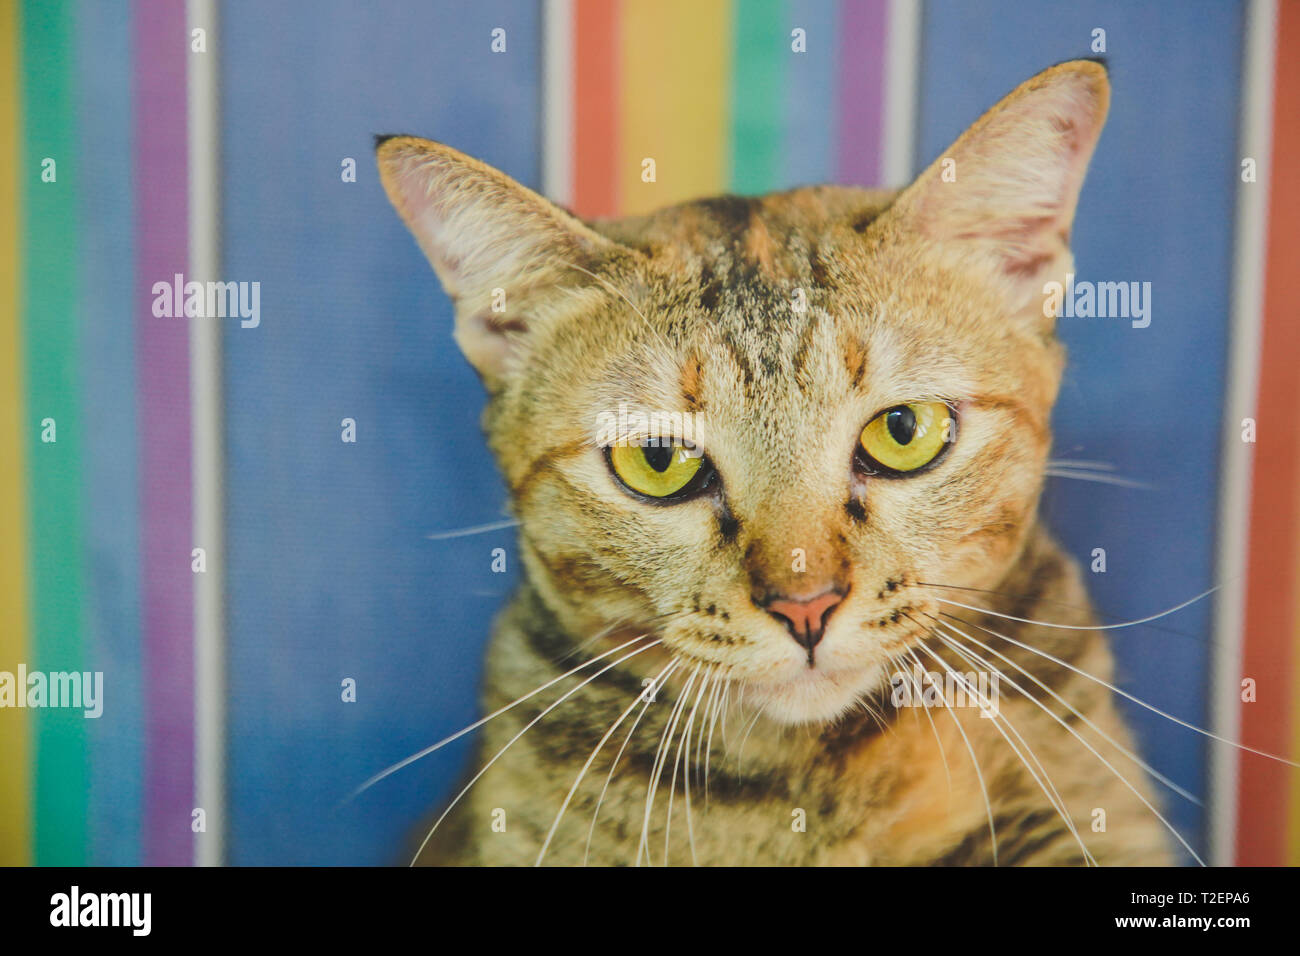 Focus of the Red and Brown Tabby cat Kitten face and golden eyes is Sleeping, boring on color of rainbow LGBTQ Background - Stock Image